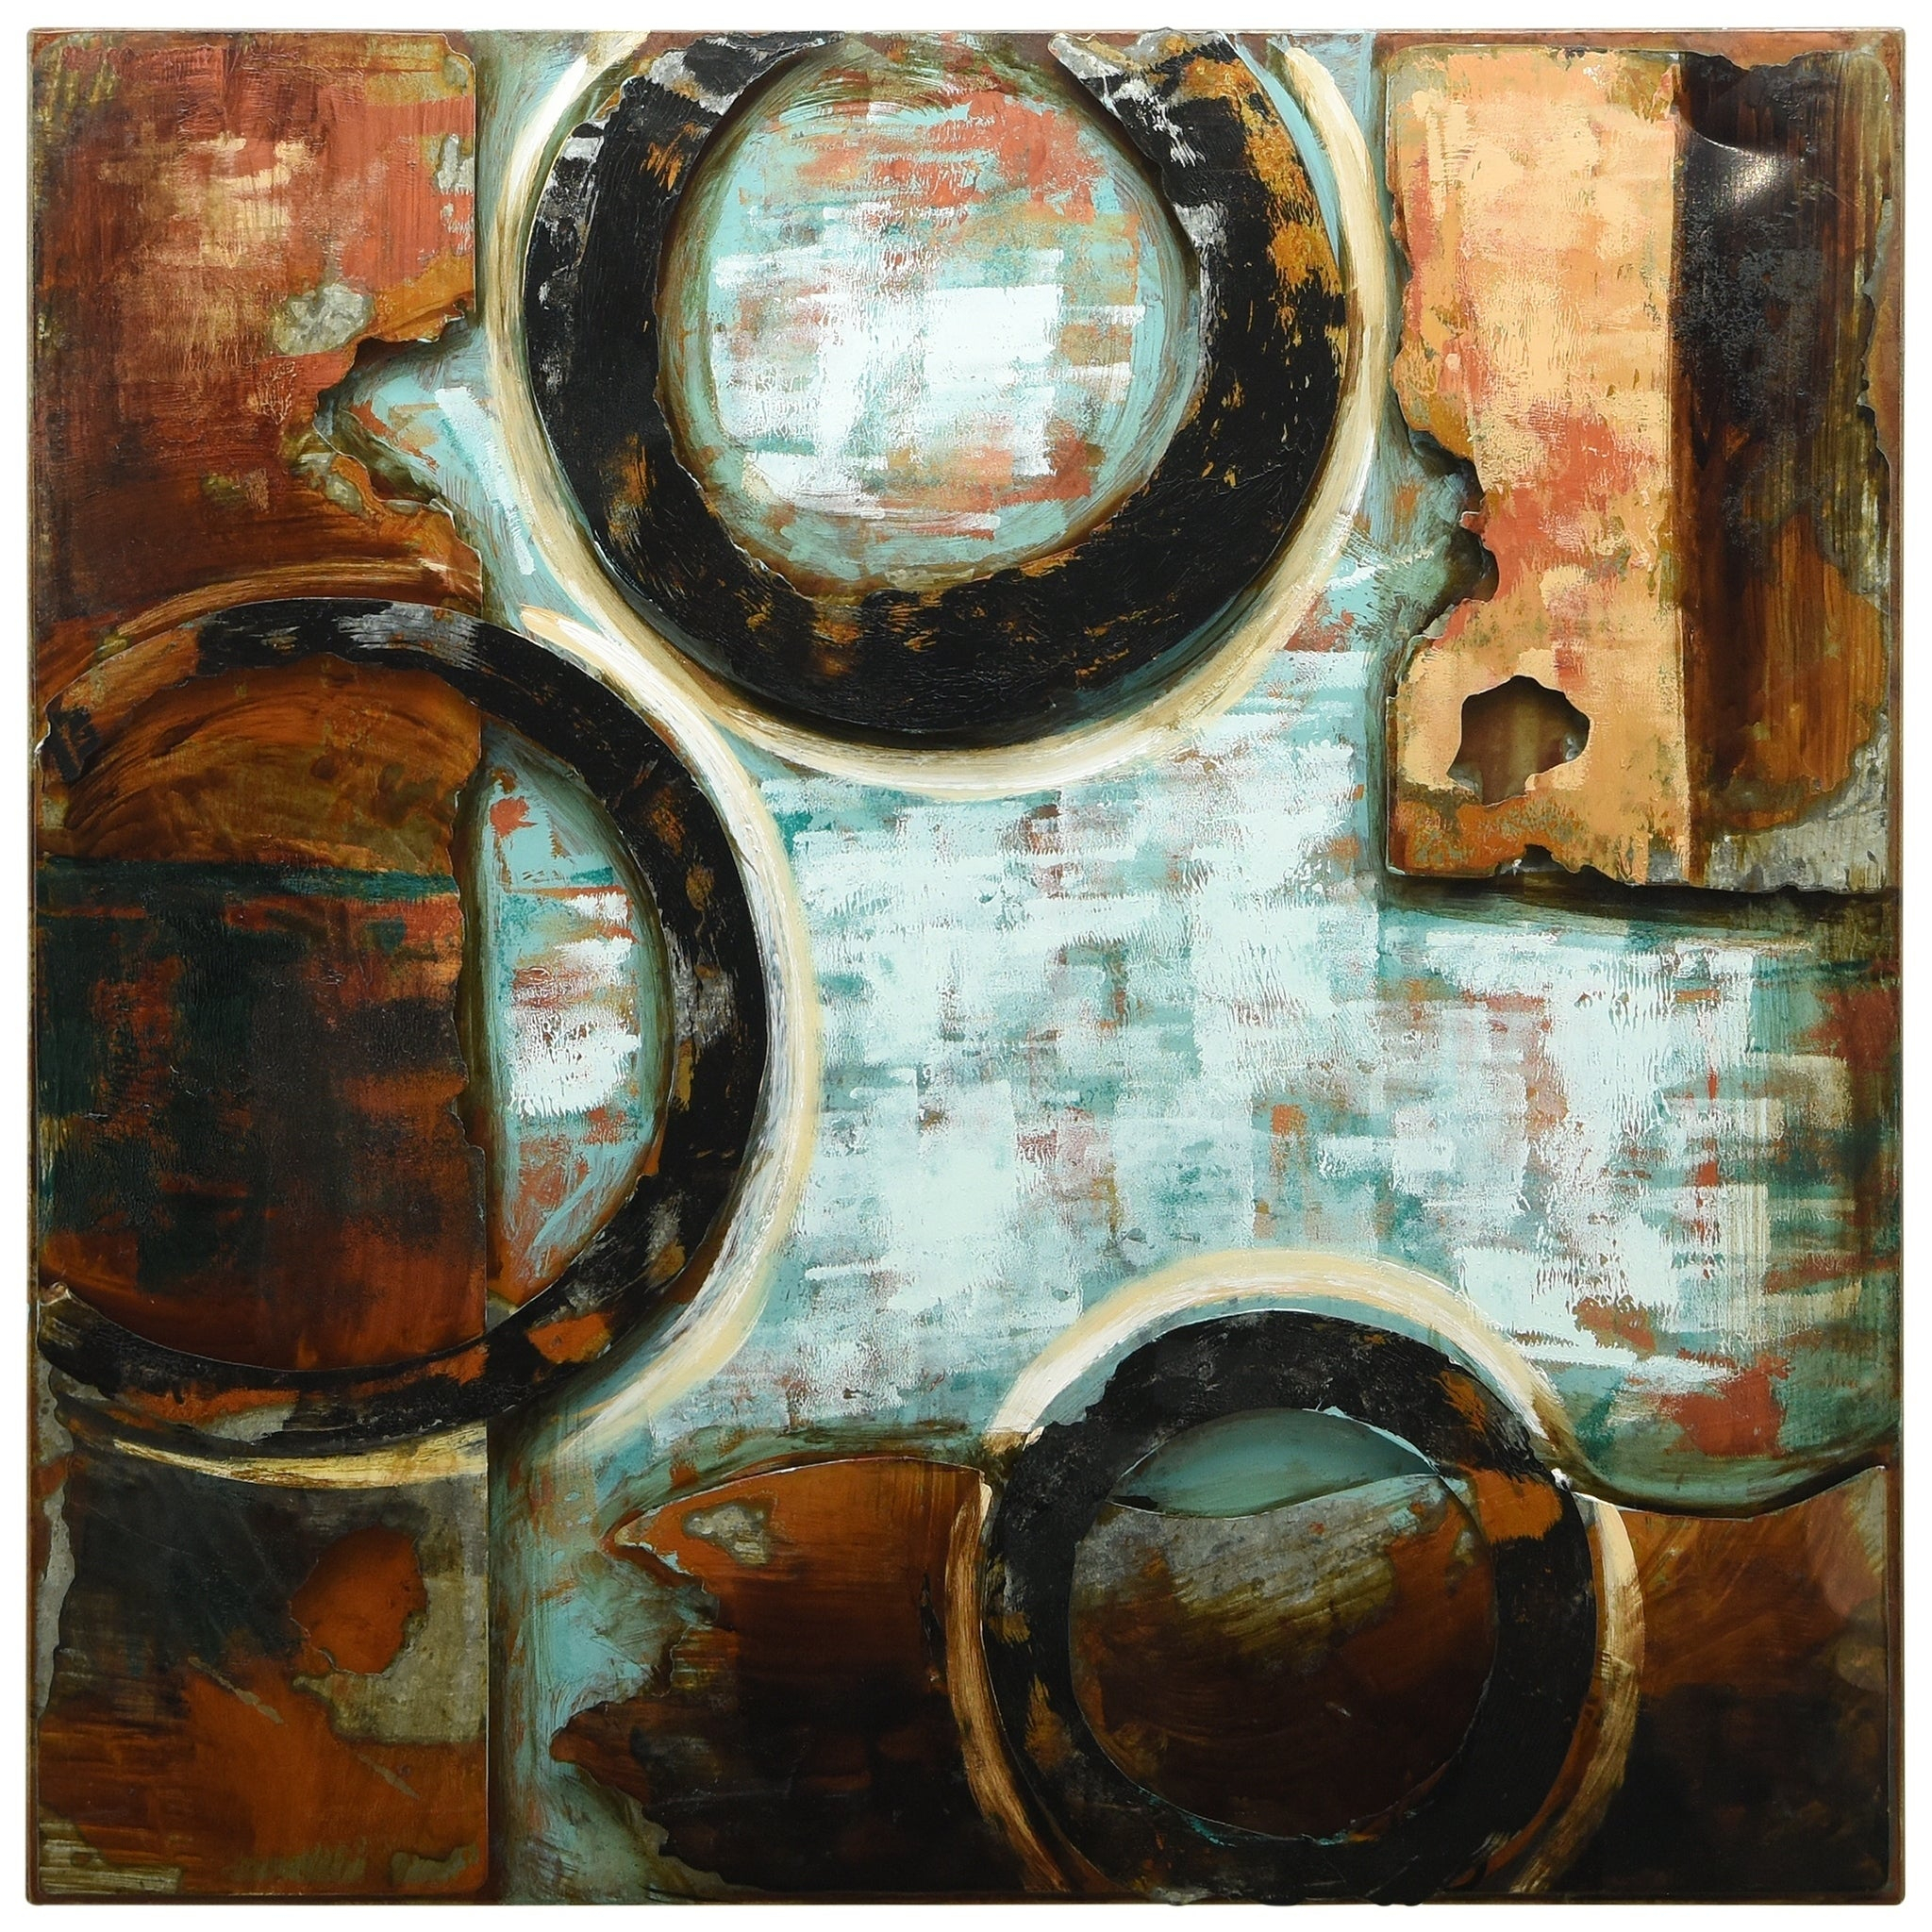 """Revolutions 2"""" Mixed Media Iron Hand Painted Dimensional Wall Décor Regarding Most Current Mixed Media Iron Hand Painted Dimensional Wall Decor (View 17 of 20)"""